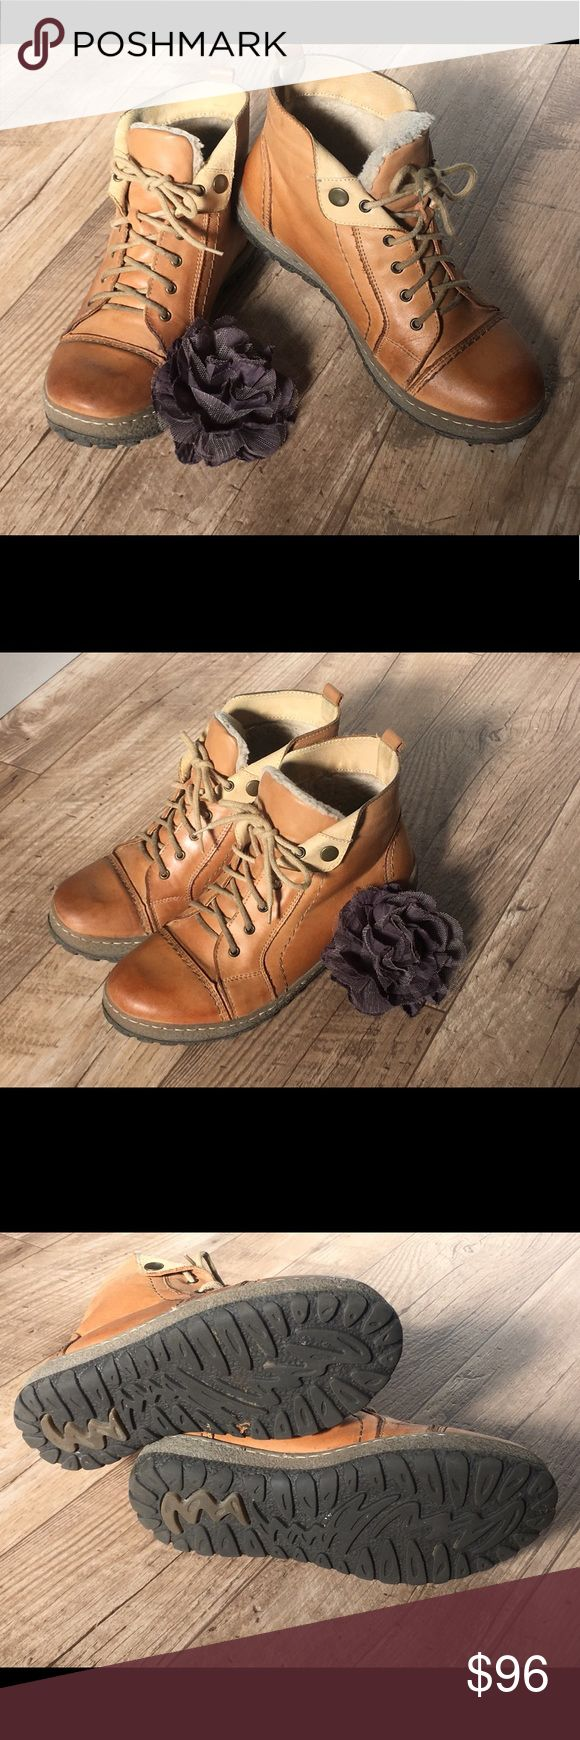 Overland Tucker wool-lined real leather boots Boots/sneakers style Great Condition  Wool-lined boots Cozy ankle, outdoor, tan, camel, caramel, cognac Size Euro 39 equivalent to women's US 9 Shoes